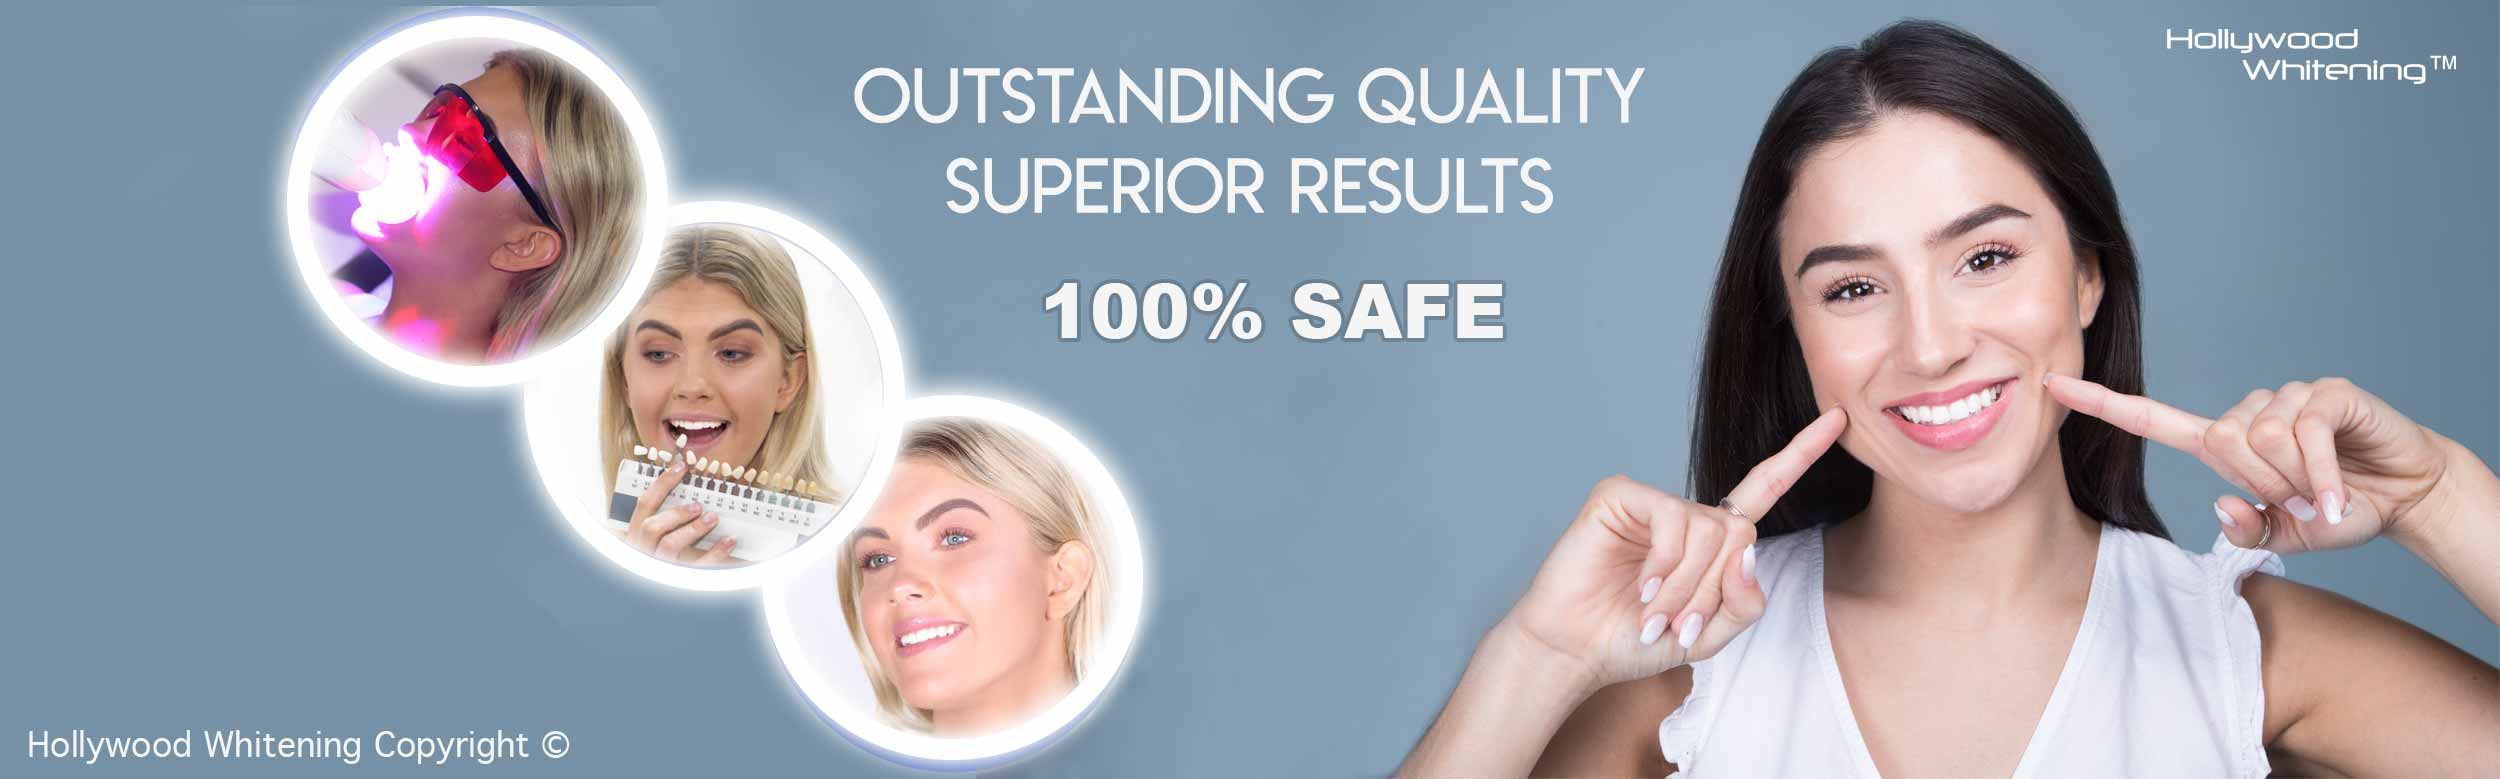 Hollywood Whitening™ – Teeth Whitening Business - Launch Video